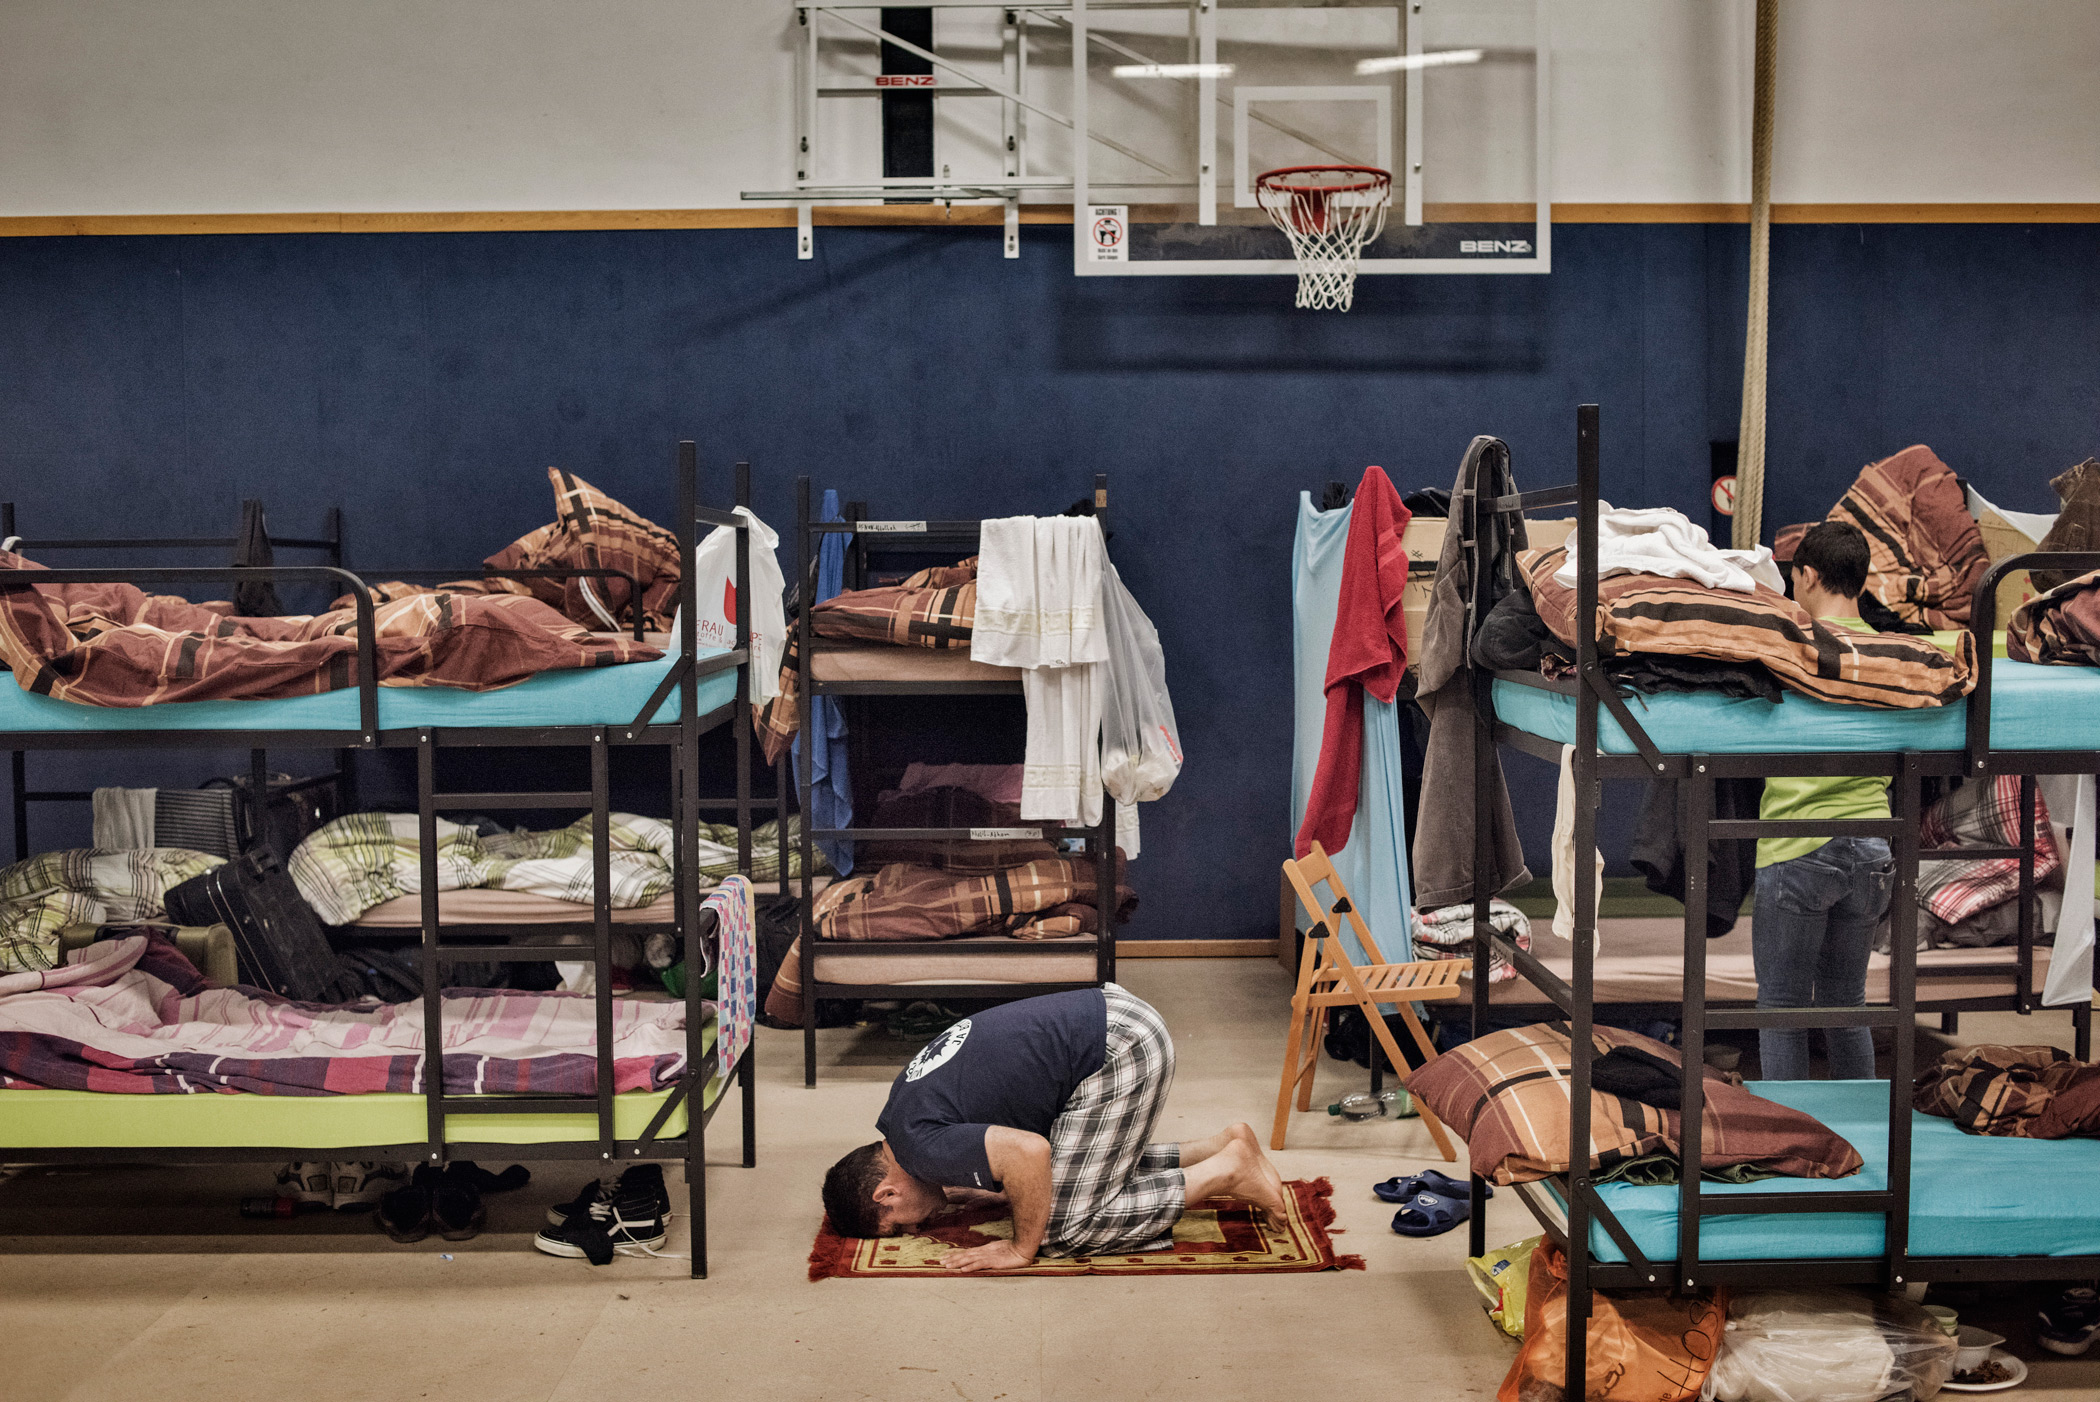 An asylum seeker prays on the floor of a shelter in Prenzlauer Berg, a locality in northeastern Berlin. Some 200 refugees were housed in less than two hours by German volunteers.From  Person of the Year.  December 21, 2015 issue.